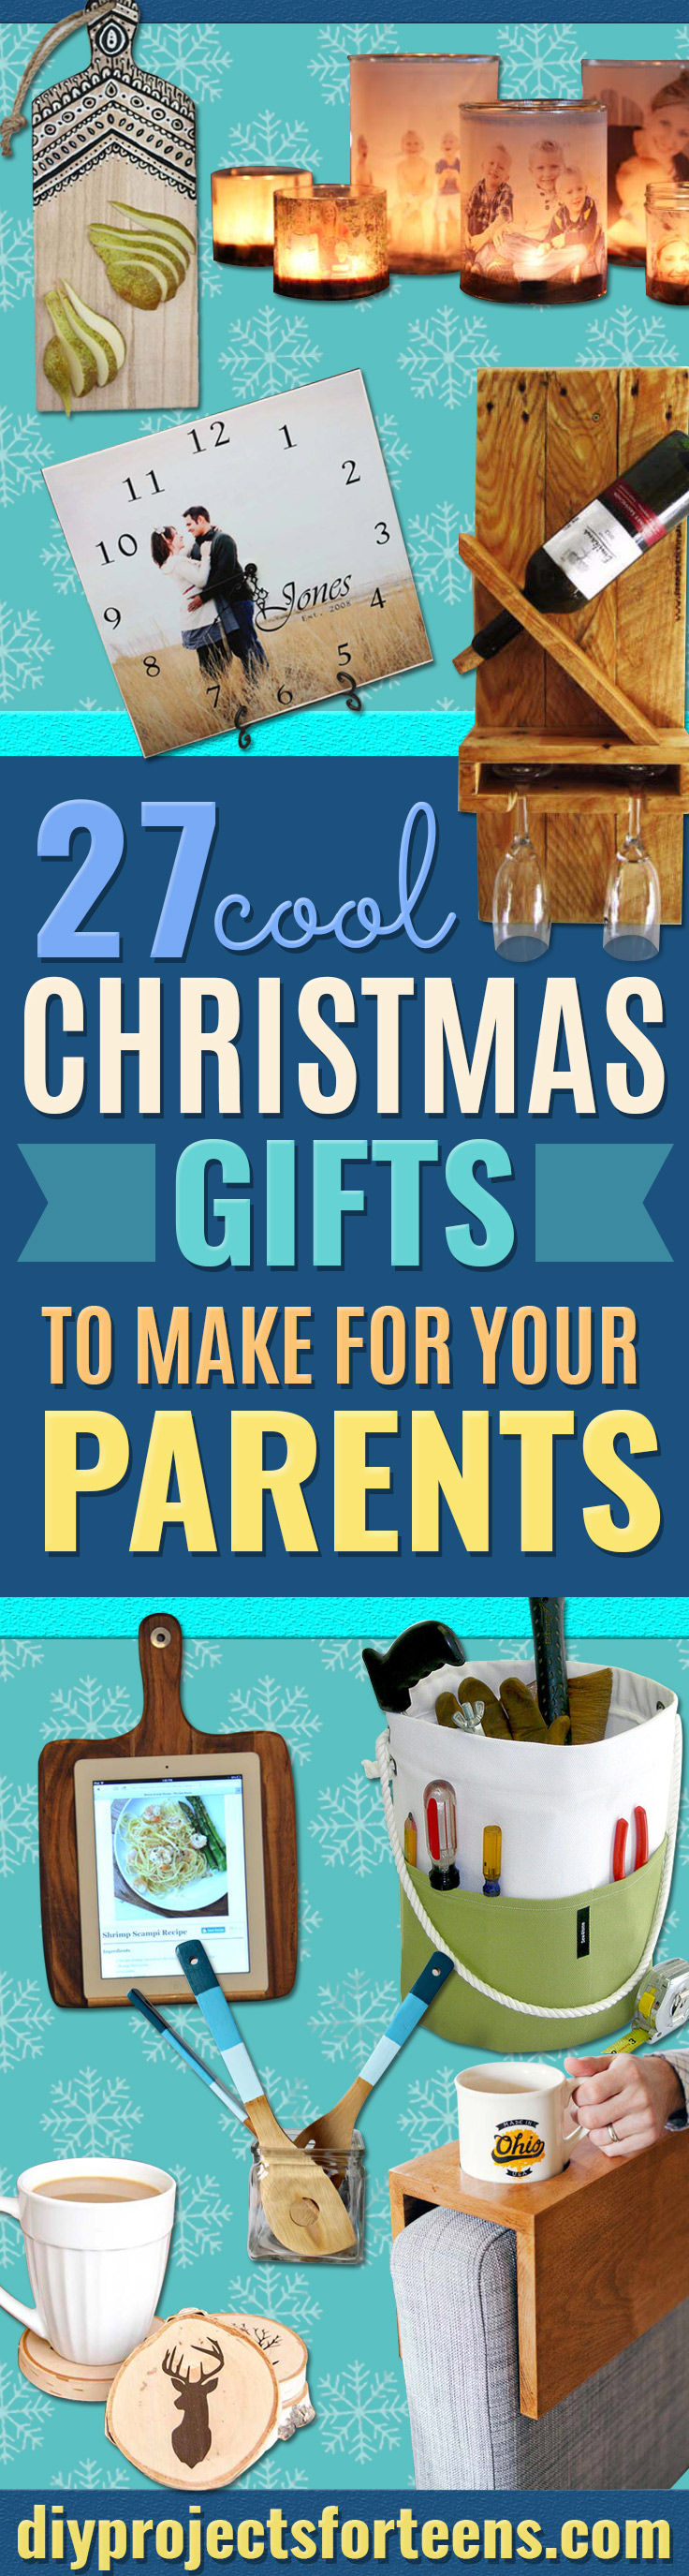 DIY Christmas Presents To Make For Parents - Cute Easy and Cheap Crafts and Gift  sc 1 st  DIY Projects for Teens : cool christmas gift for dad - medton.org